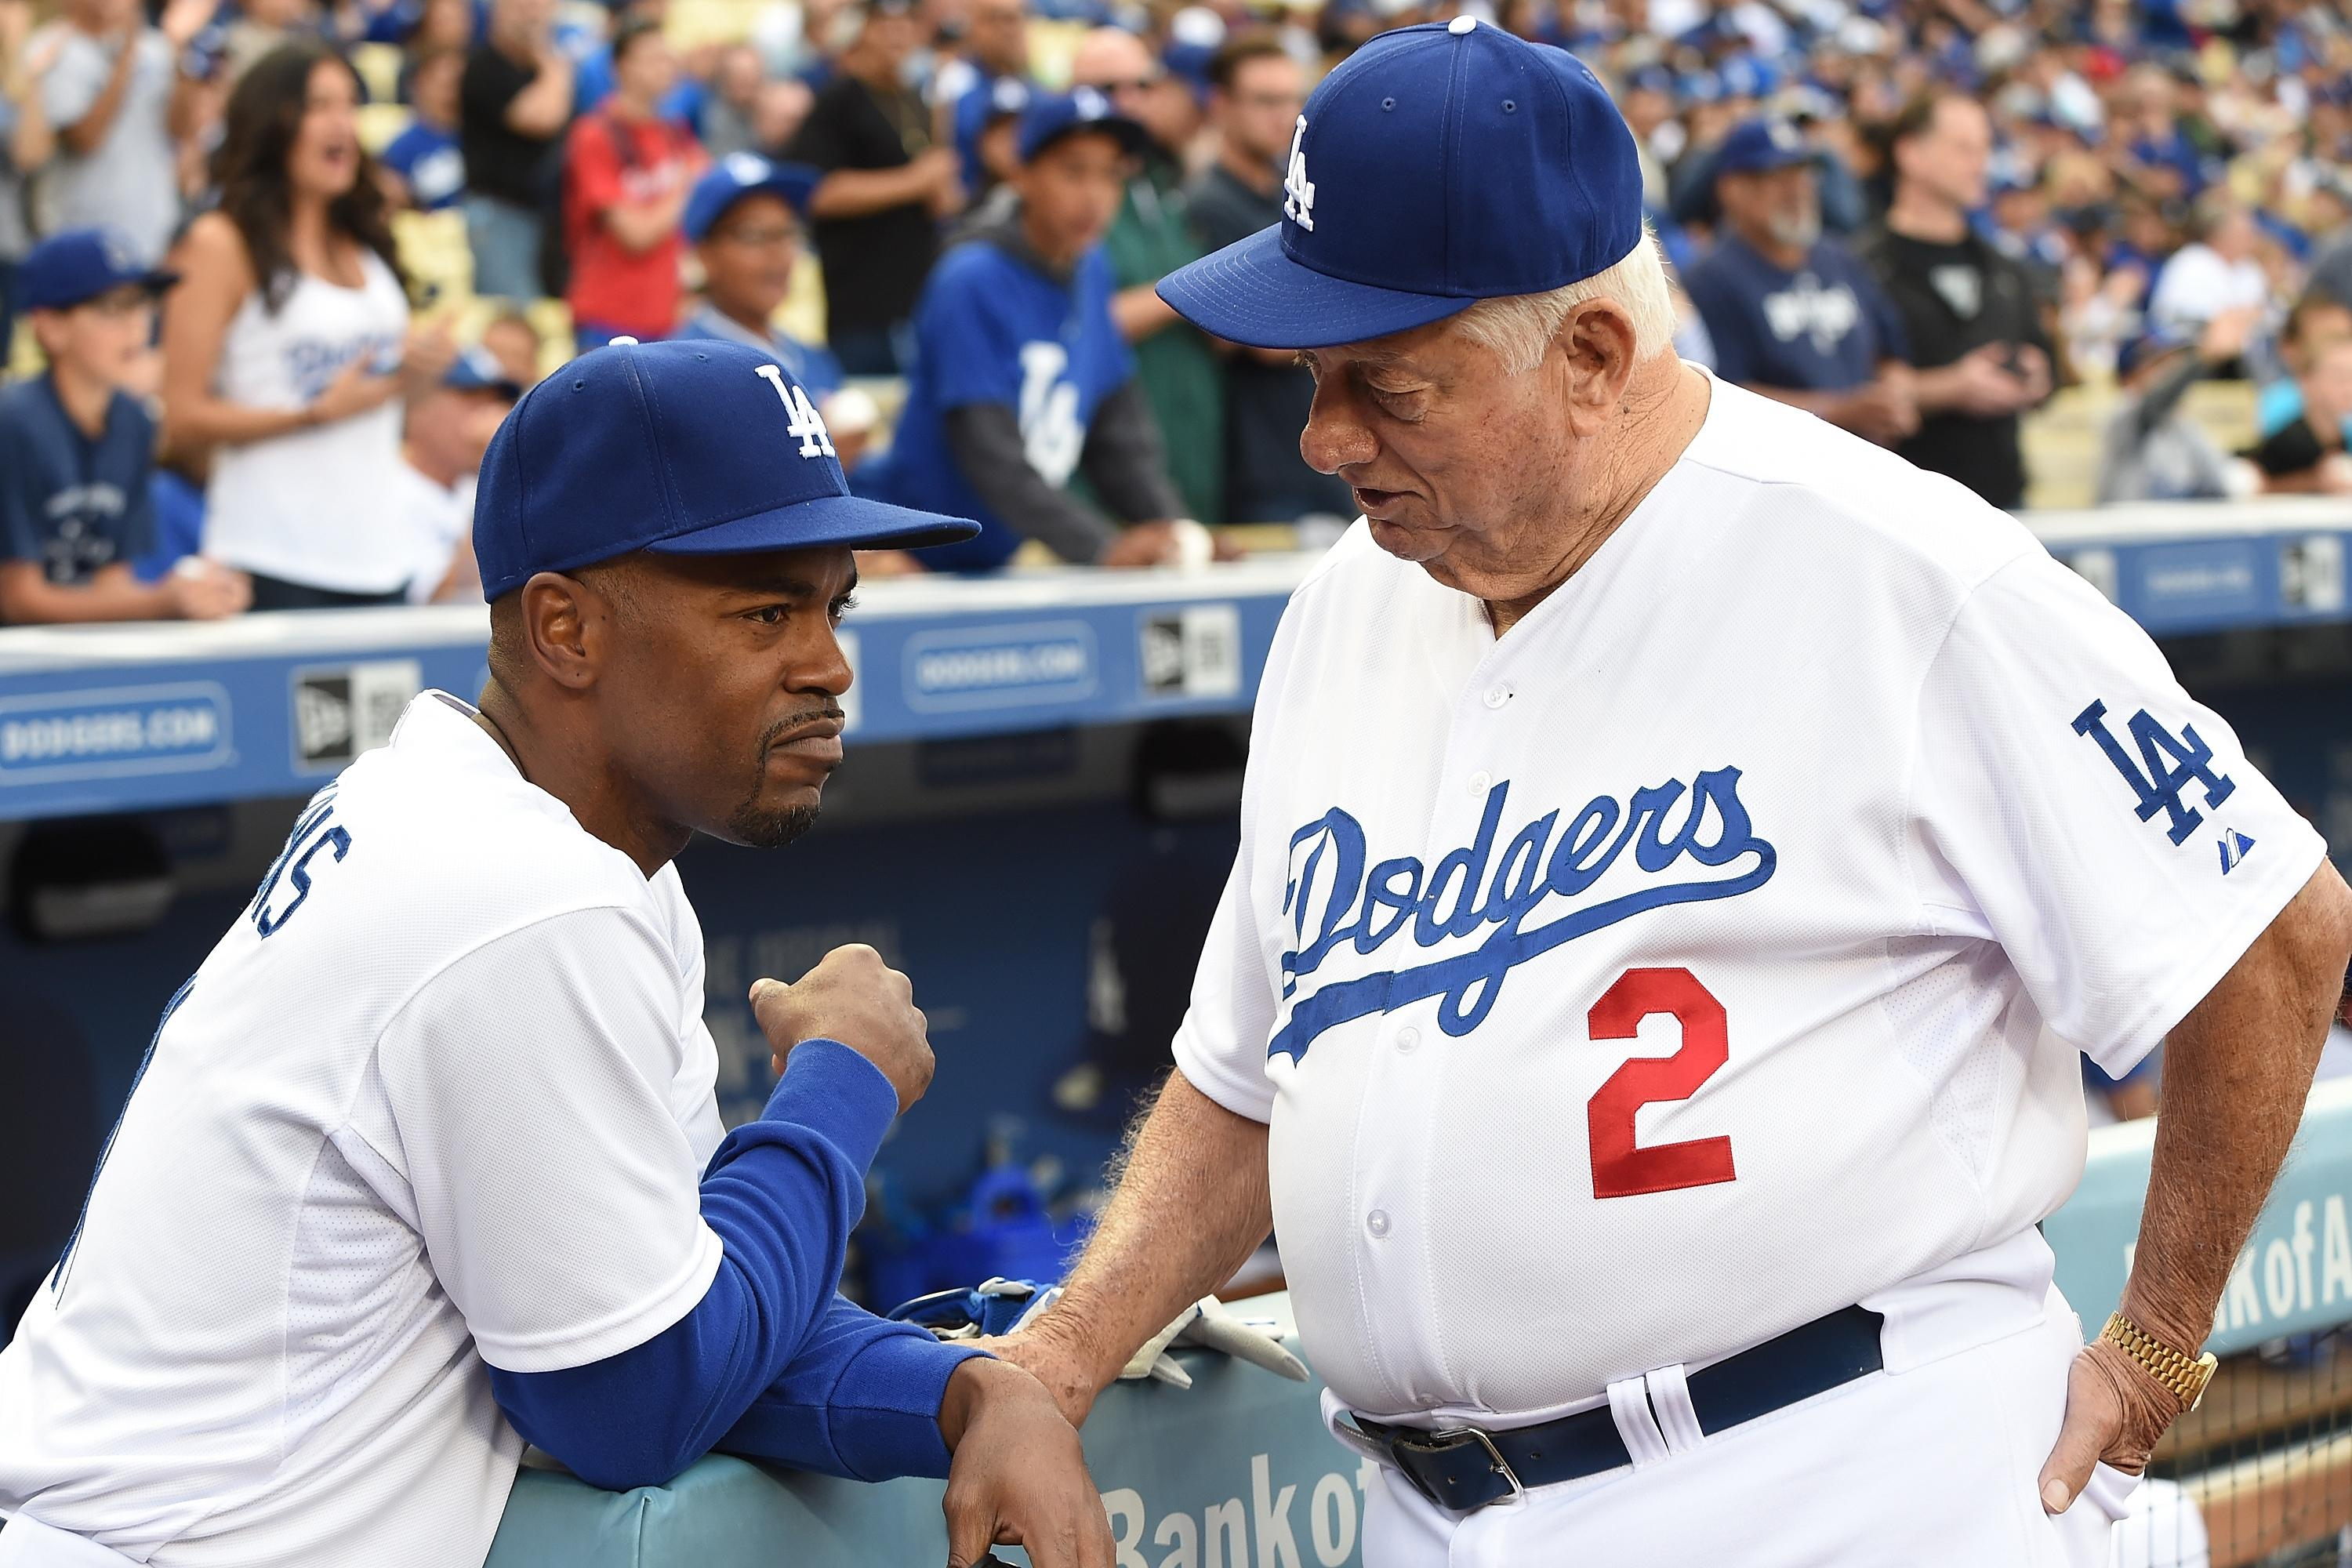 Jimmy Rollins wears Tommy Lasorda jersey while serving as acting manager